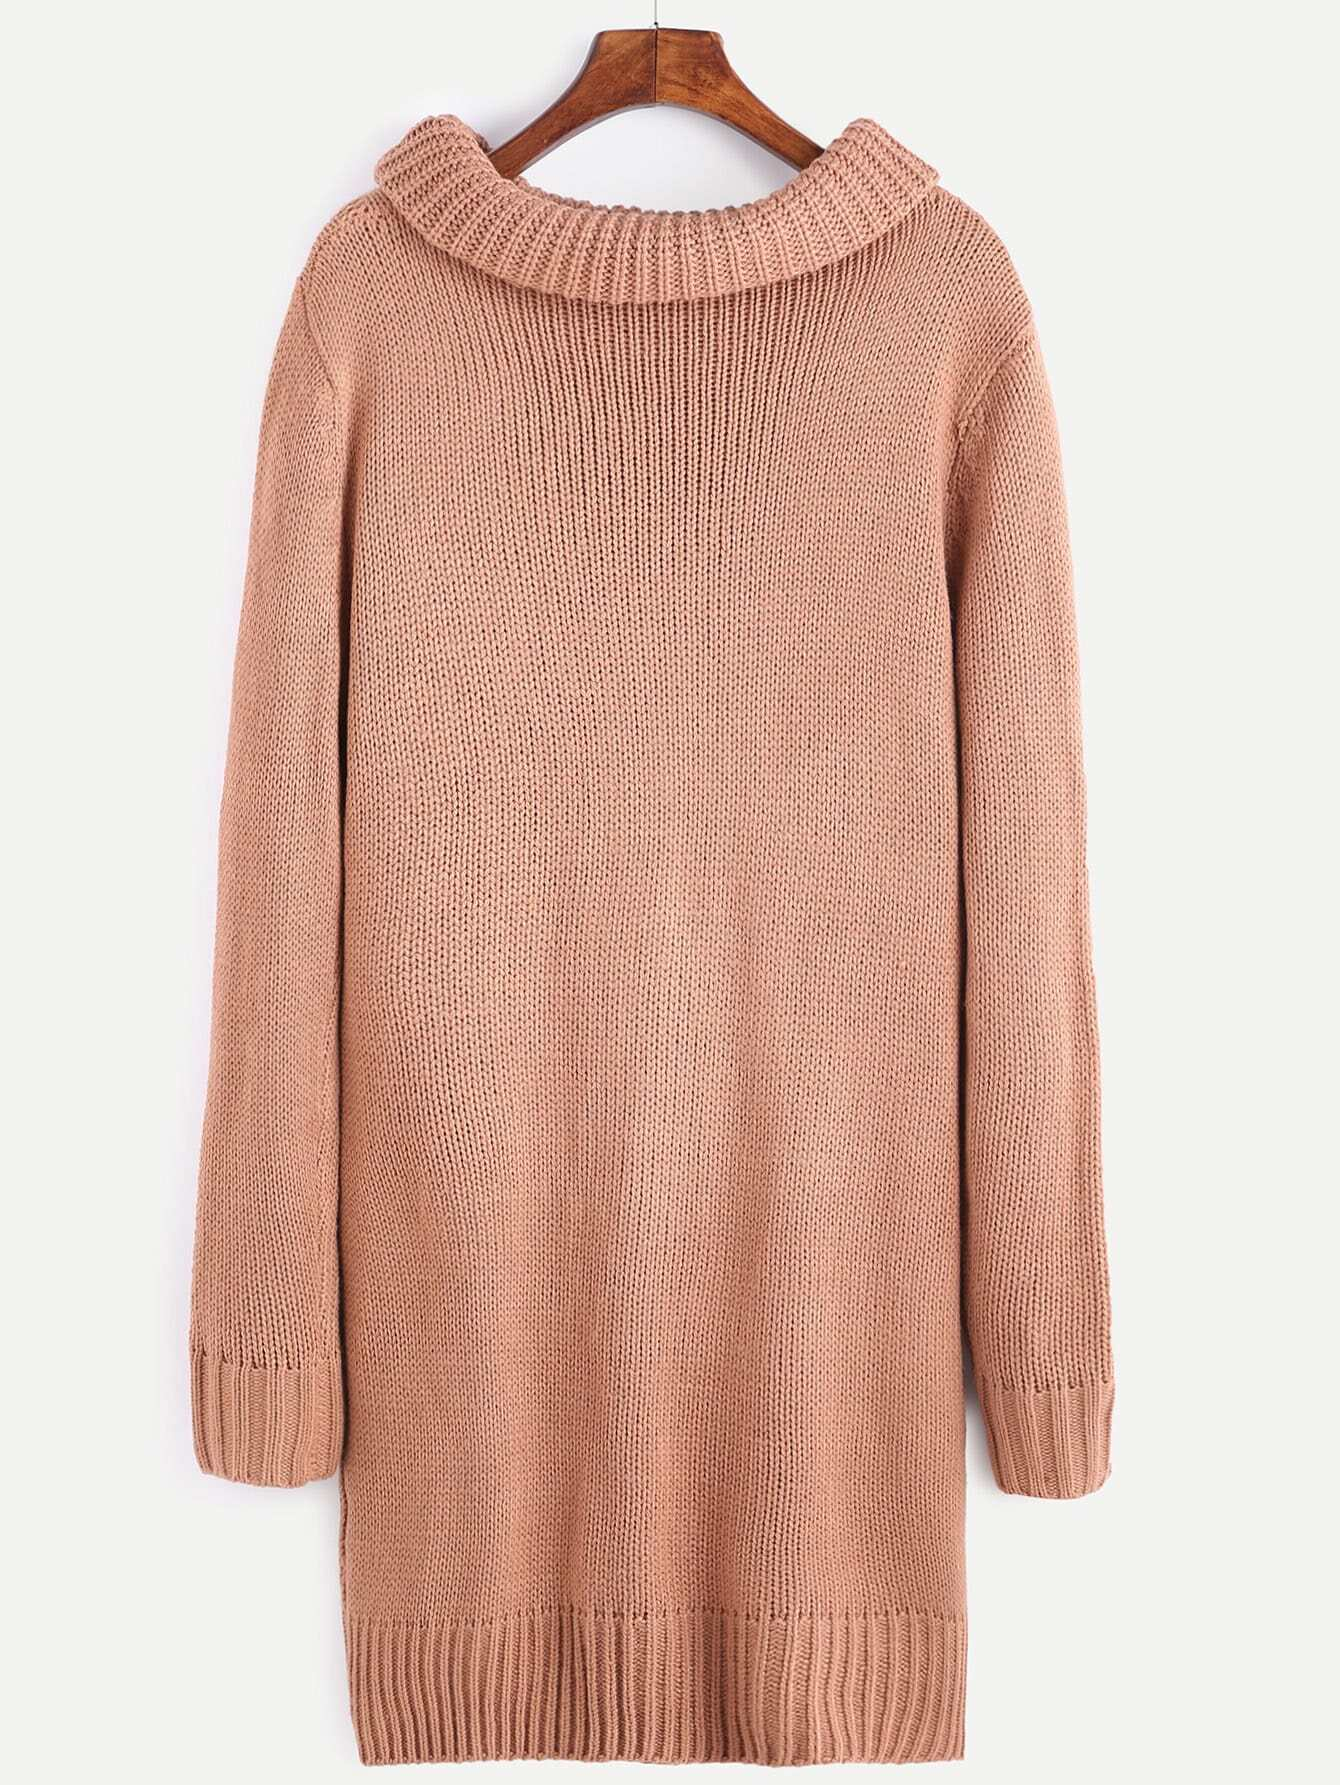 Pink Cable Knit Turtleneck Sweater Dress With Pocket -SheIn(Sheinside)